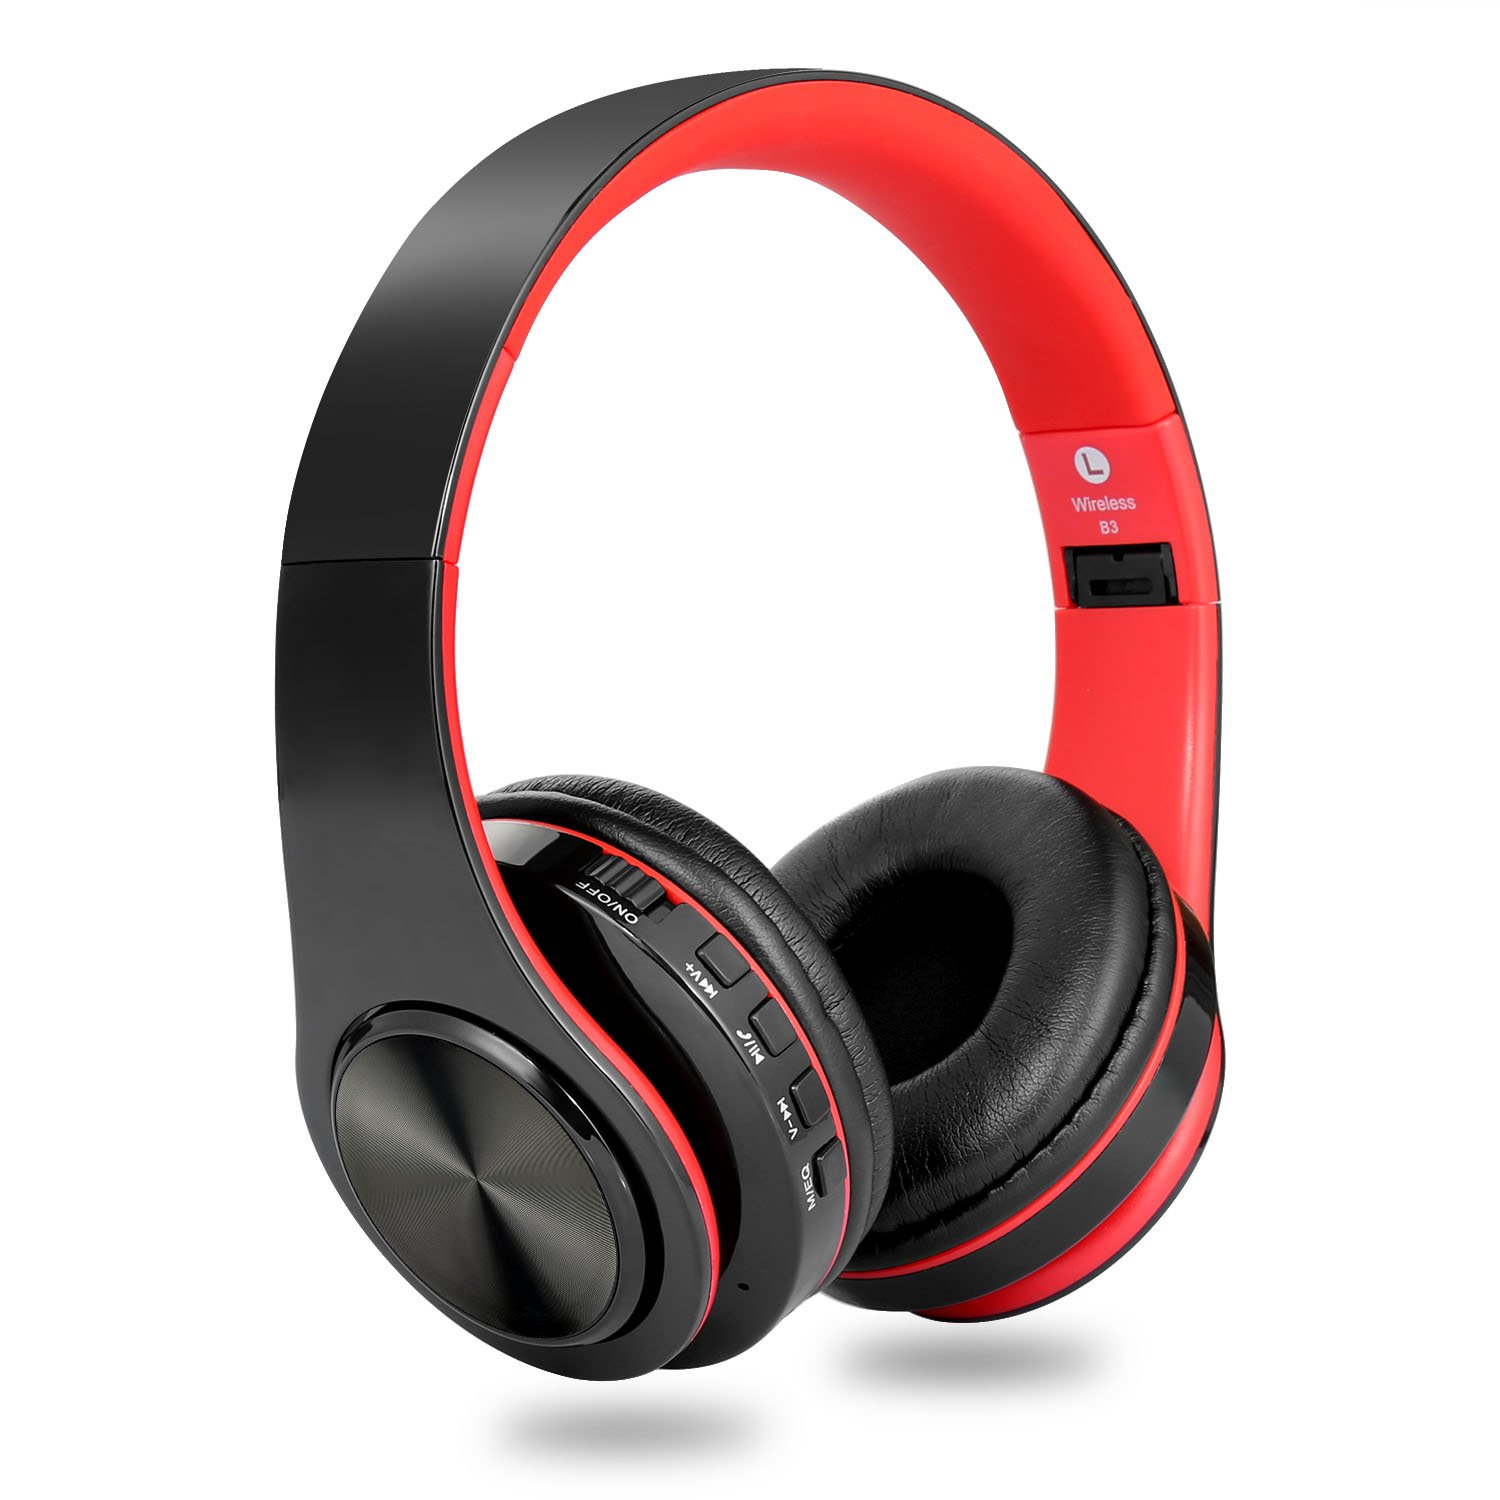 Over Ear Bluetooth Headphones, Foldable Hi-Fi Deep Bass Wireless Headphones with Microphone and Wired Headset Support SD/TF Card for Travel Work Cell Phones PC (Red) Zicoo B3